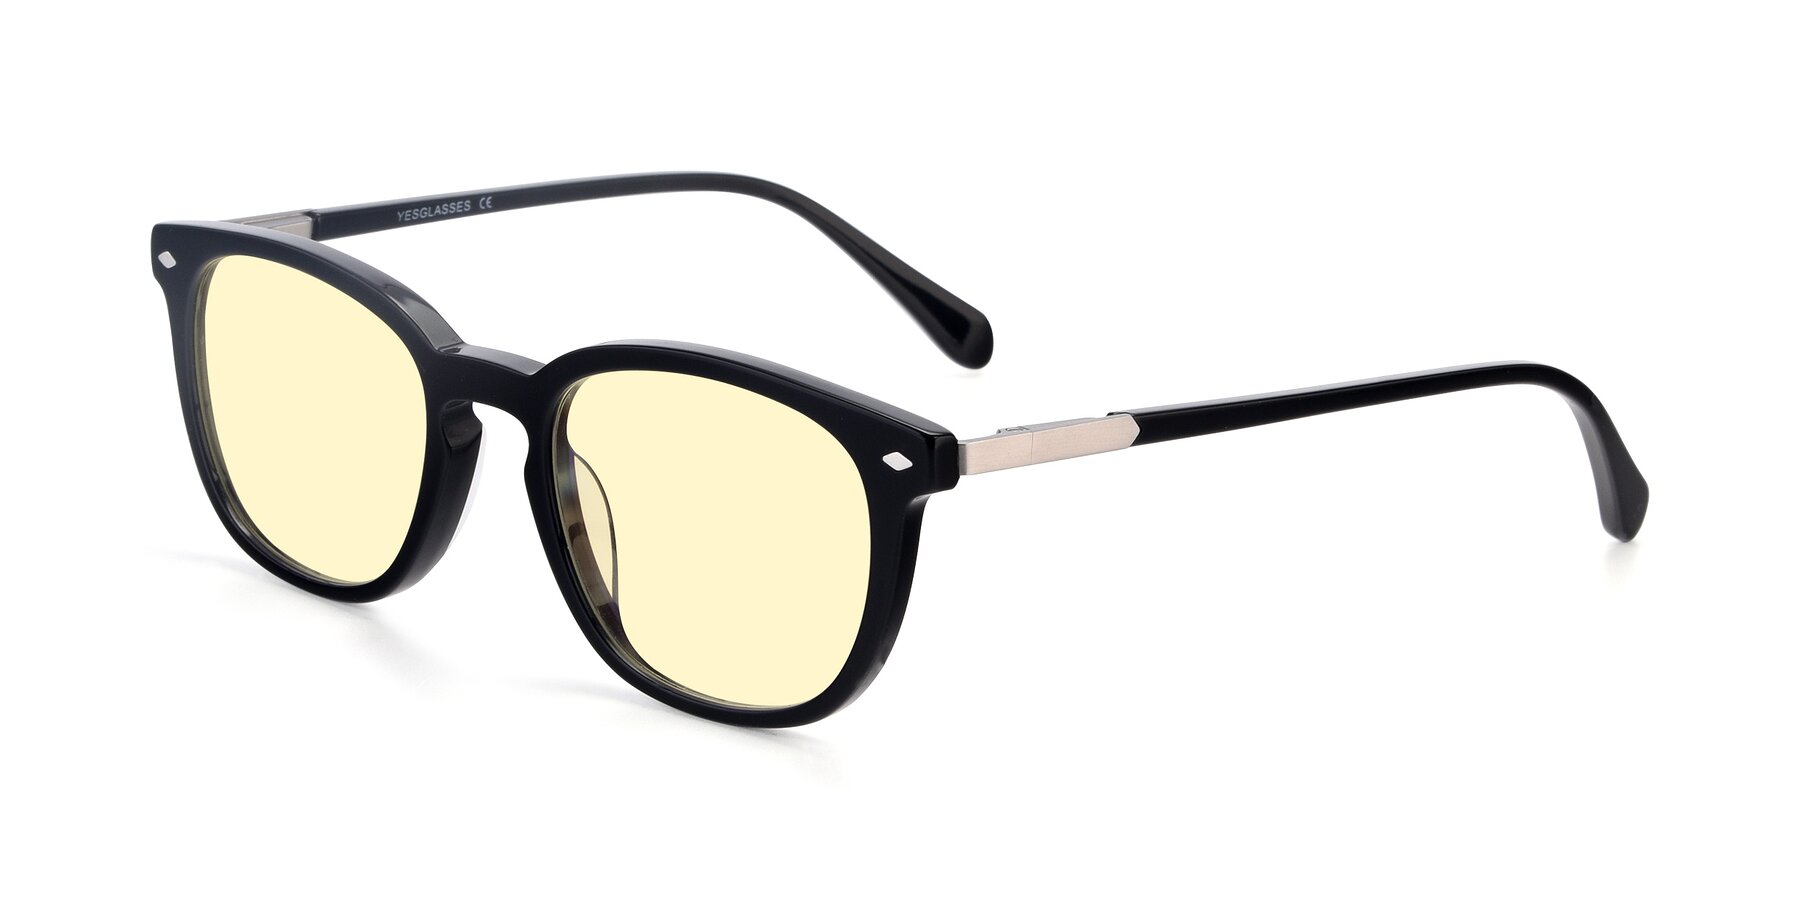 Angle of 17578 in Black with Light Yellow Tinted Lenses